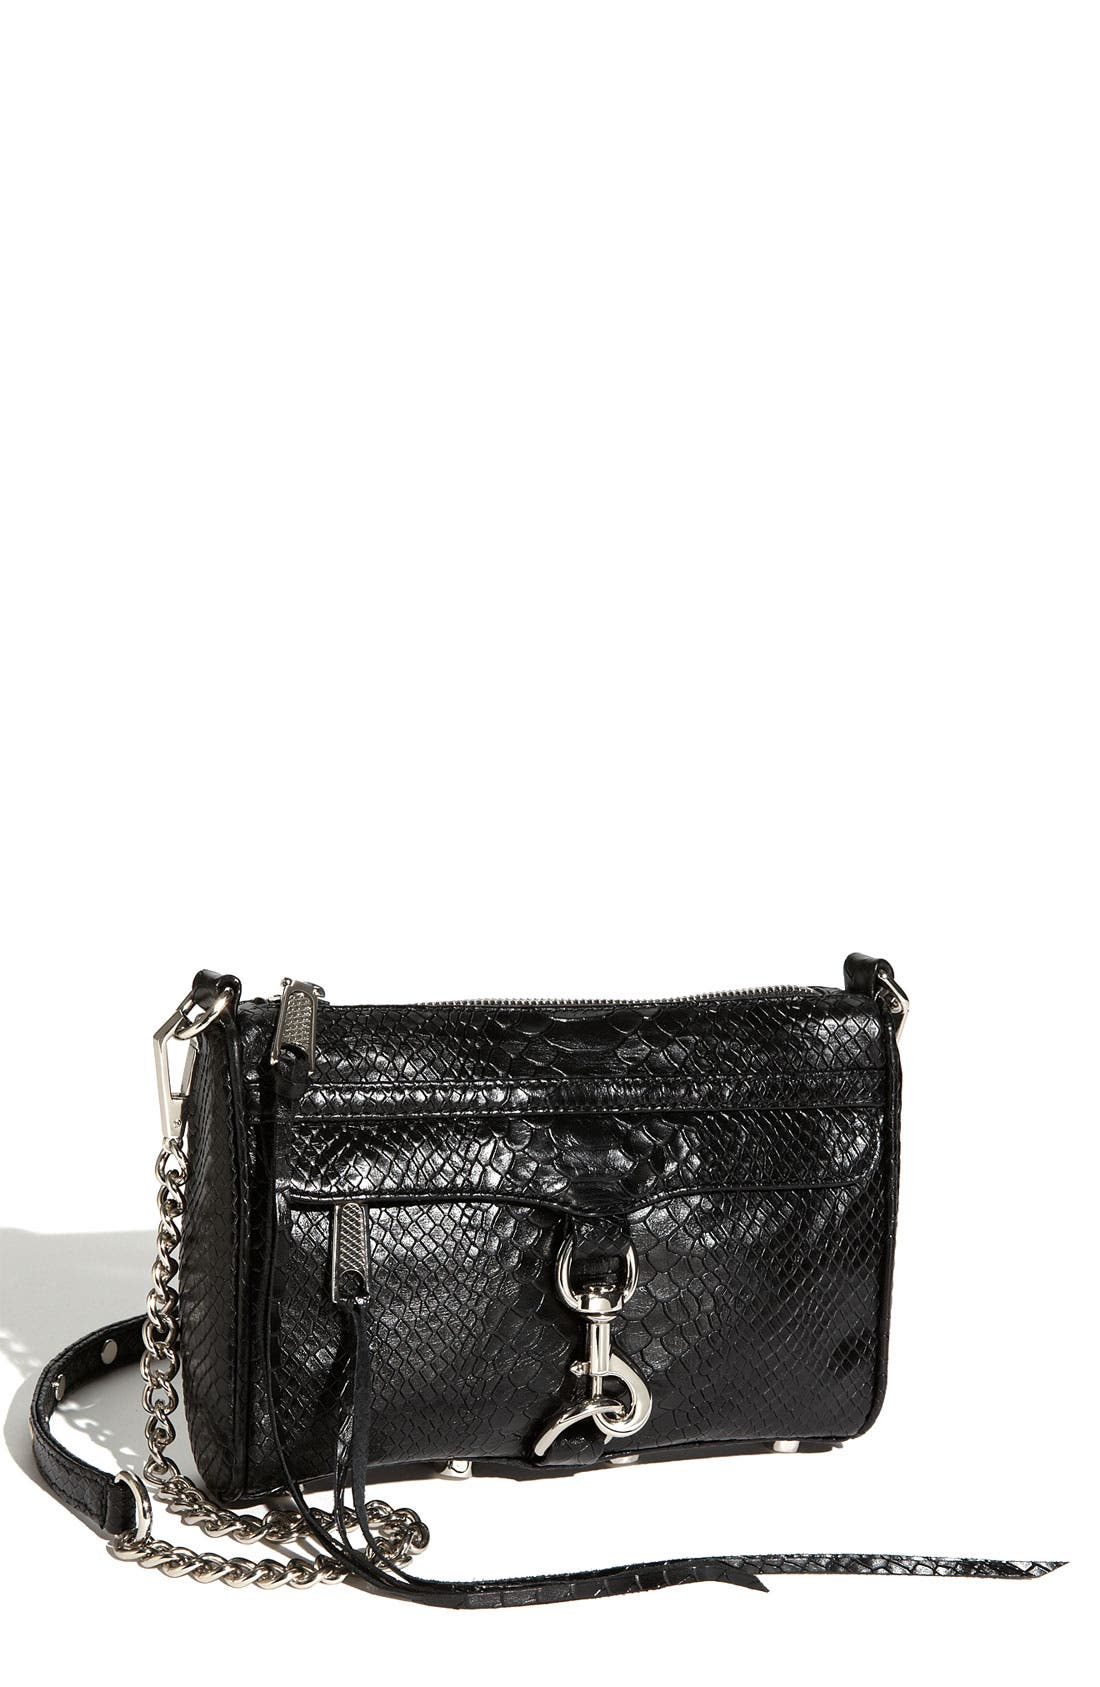 'Mini MAC' Croc Embossed Convertible Crossbody Bag,                             Main thumbnail 3, color,